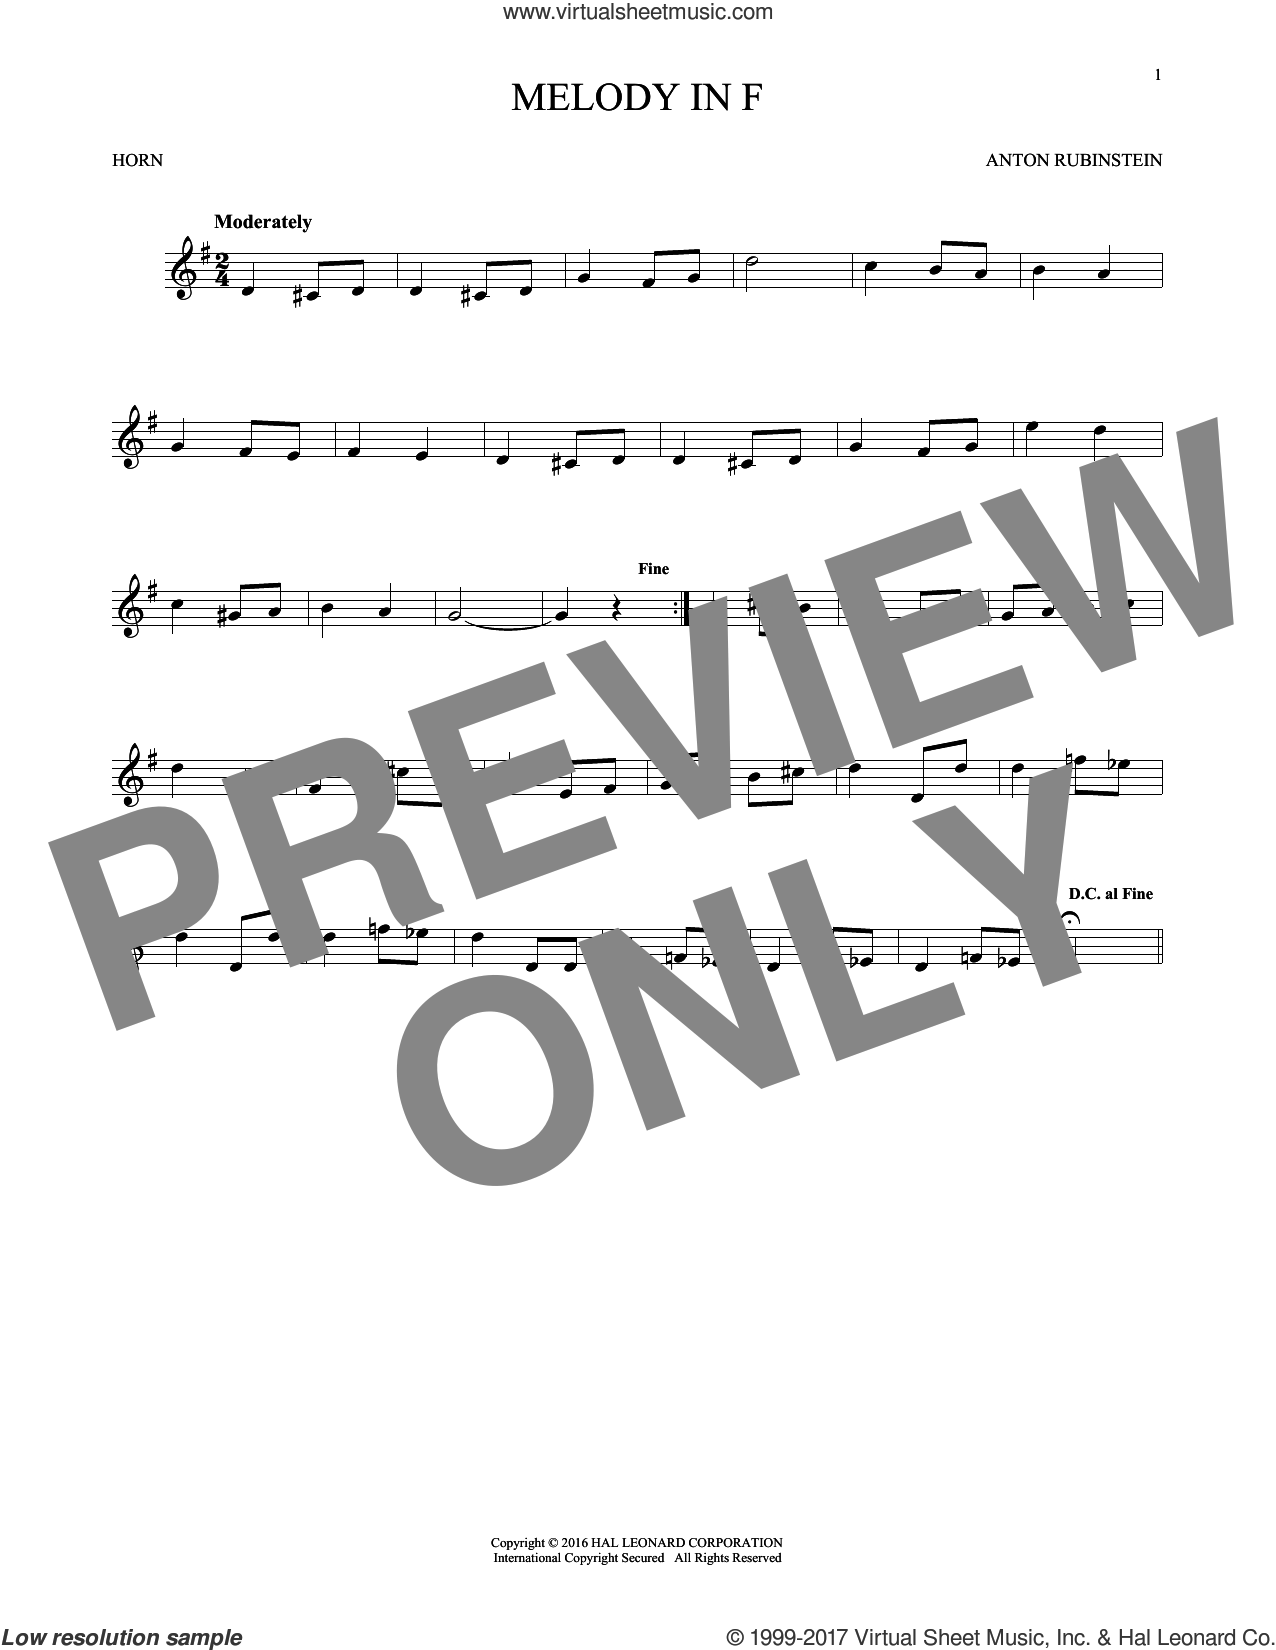 Melody In F sheet music for horn solo by Anton Rubinstein, classical score, intermediate skill level